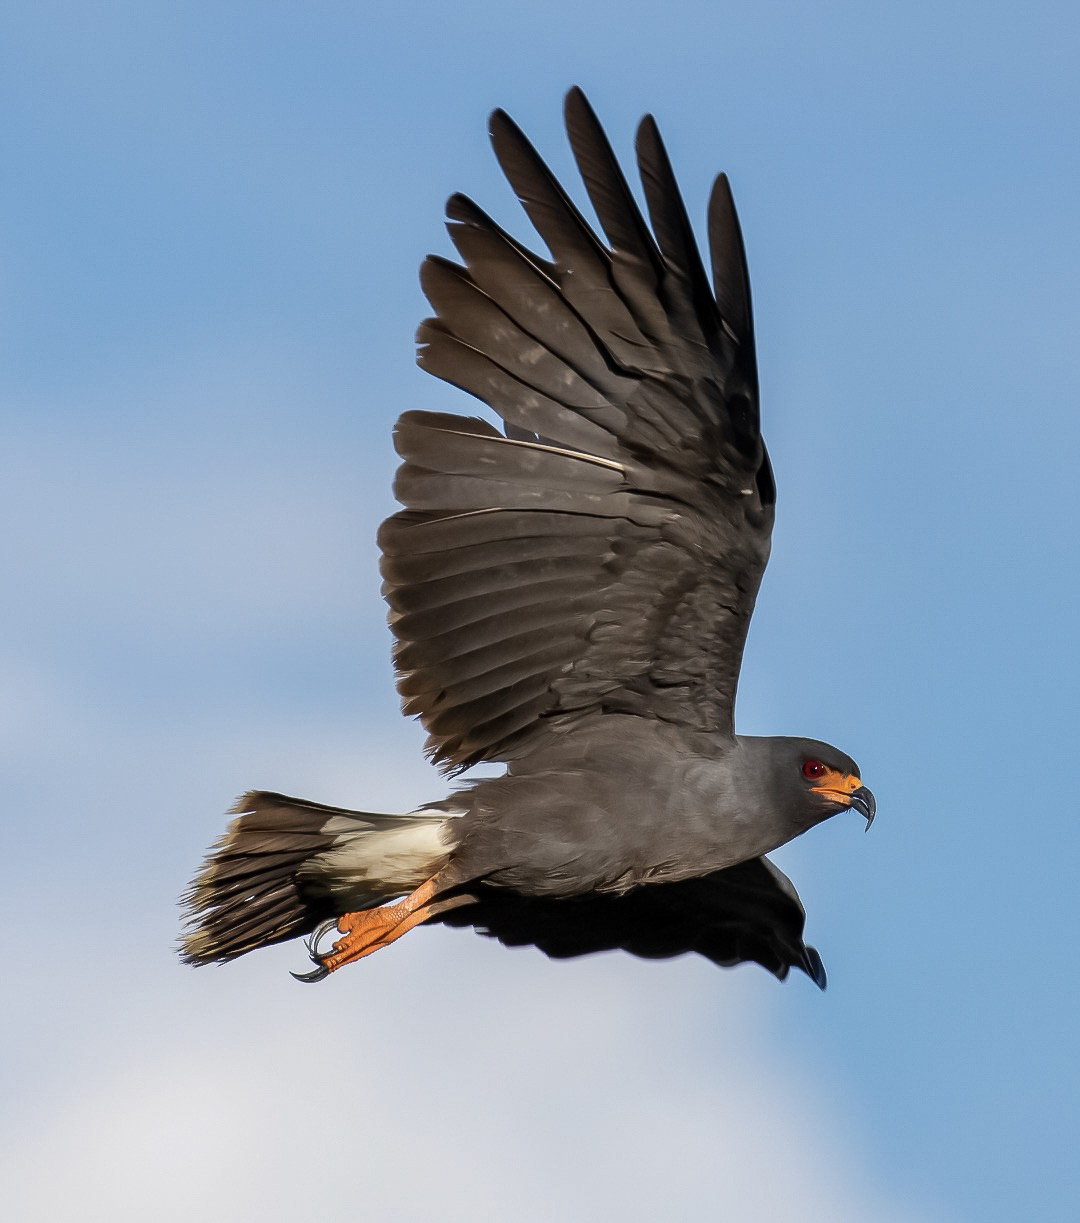 photo of a snail kite flying in a blue sky